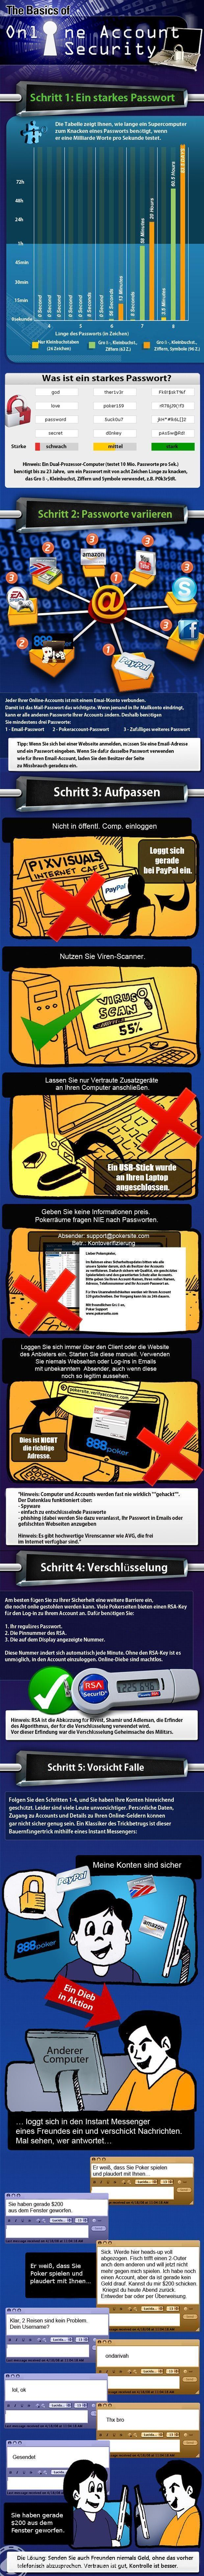 online security infographic initialgerman